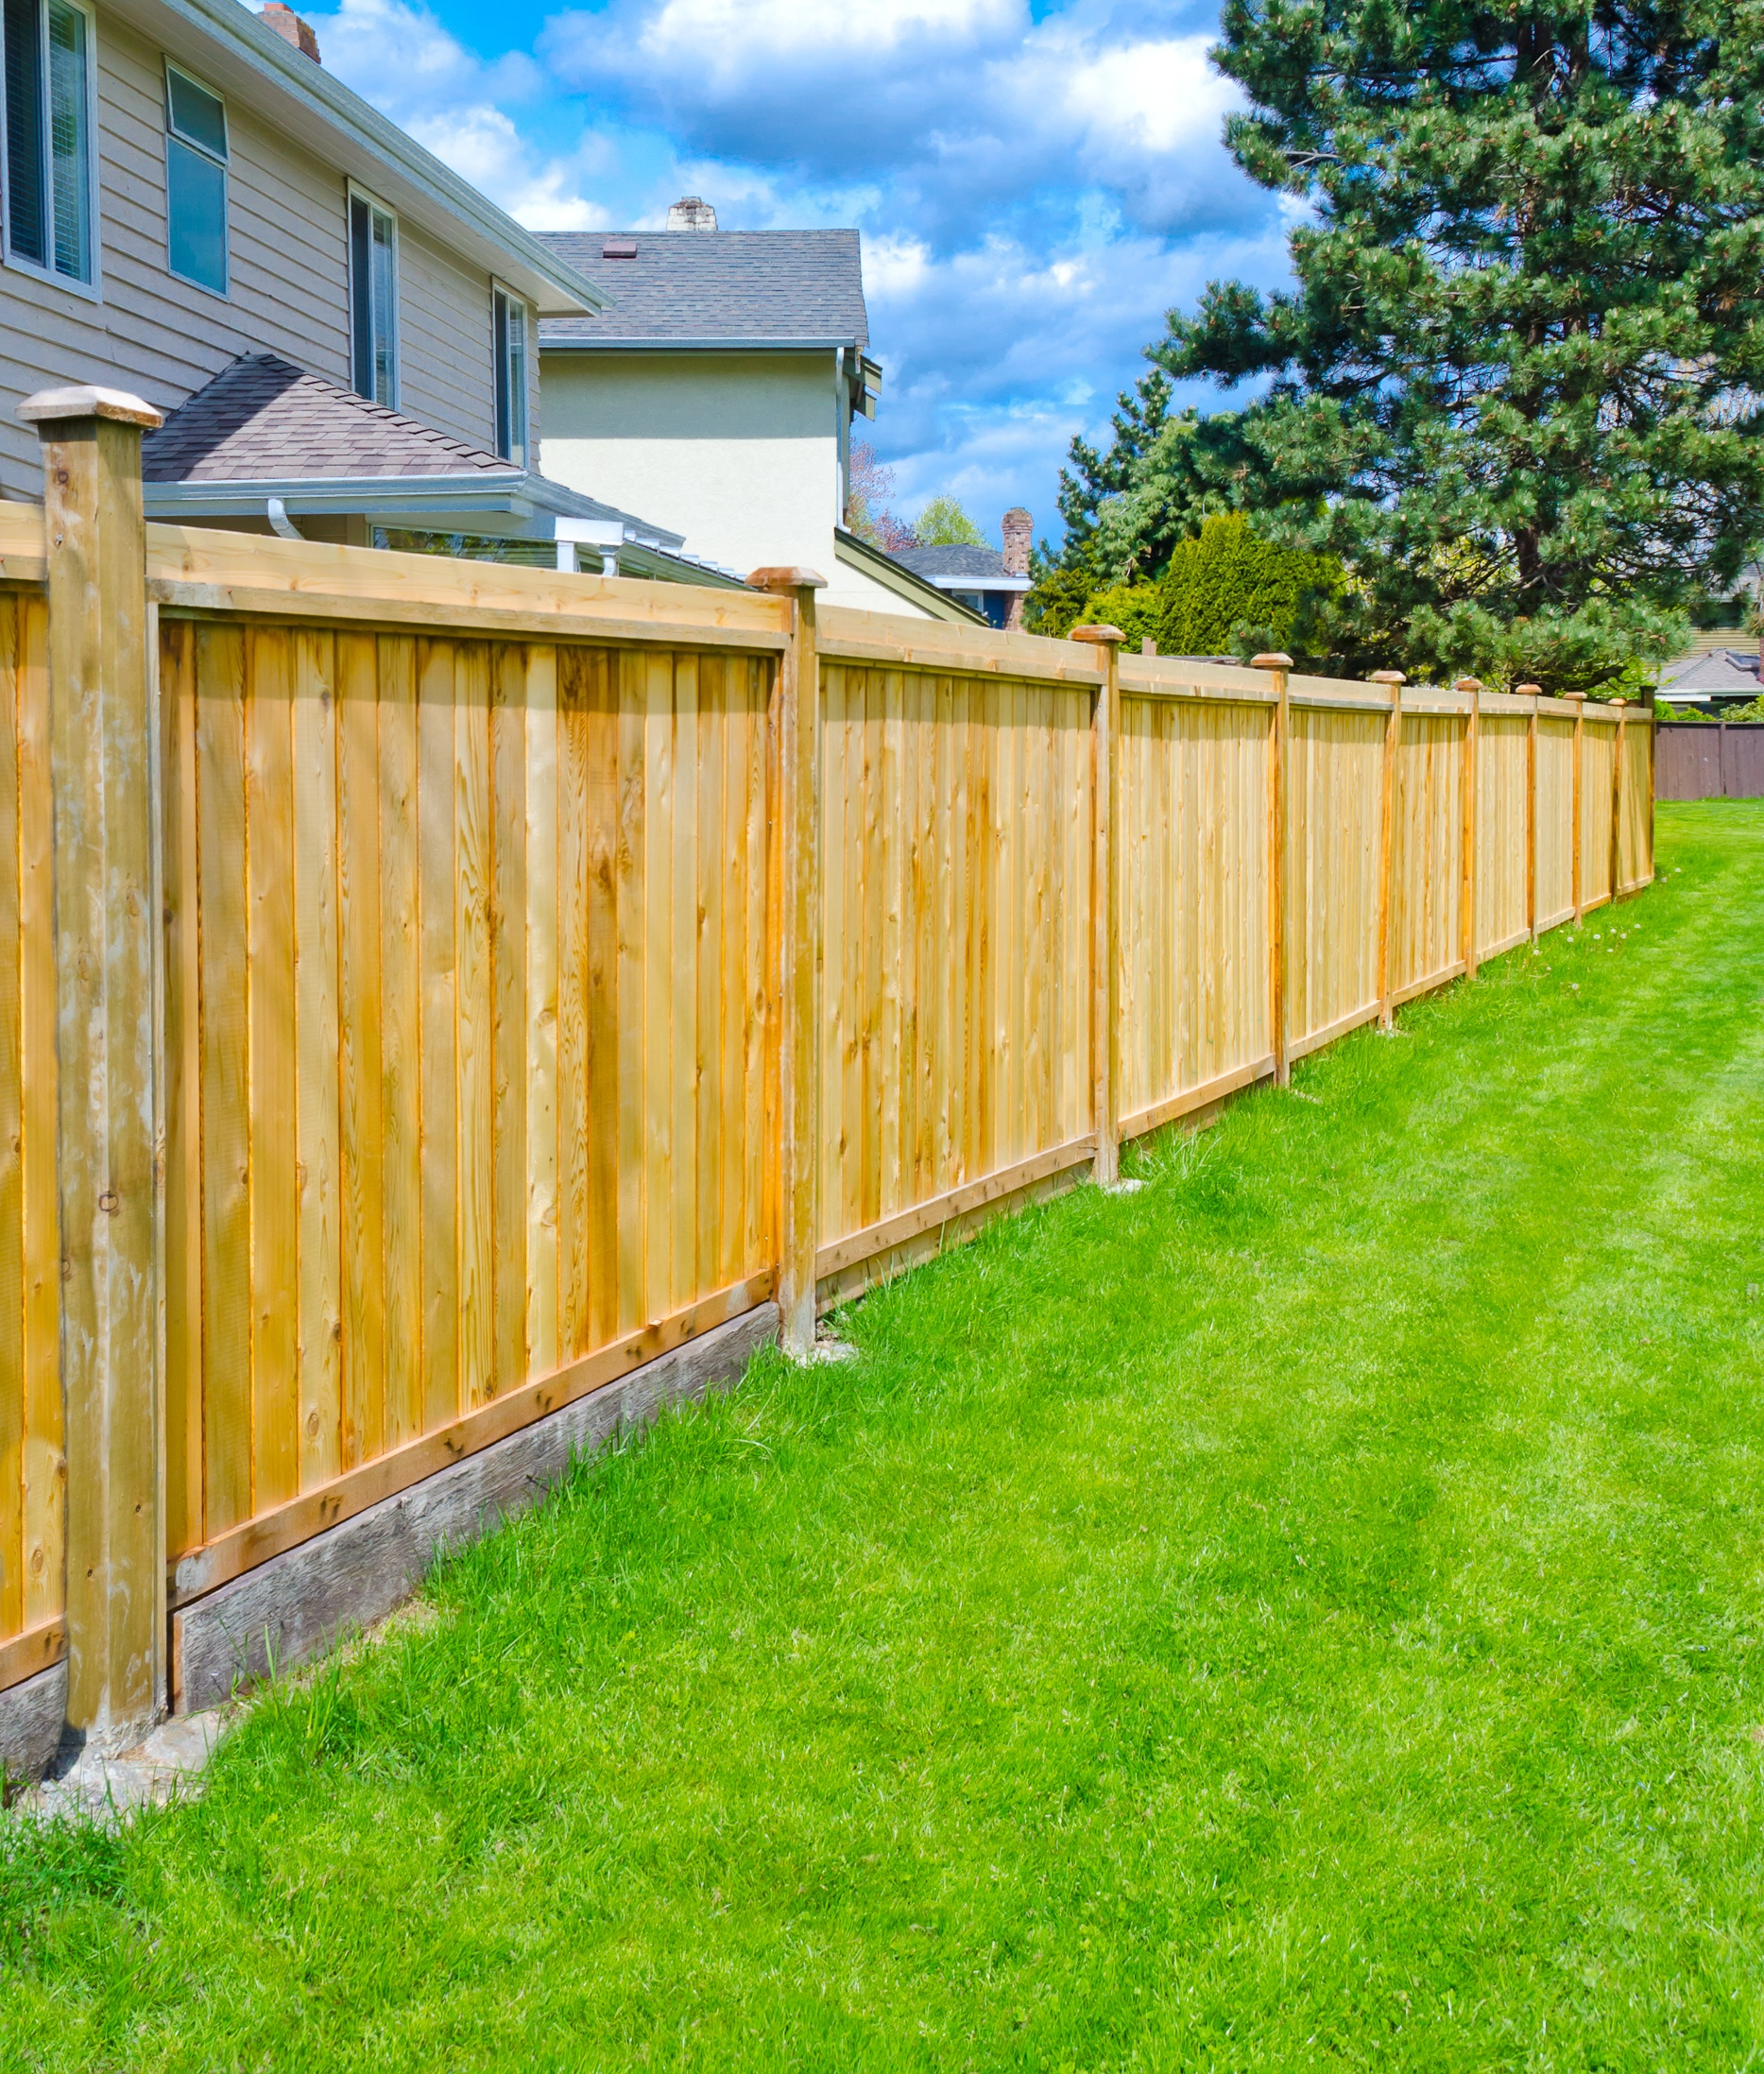 etiquette of installing a privacy fence virtual results